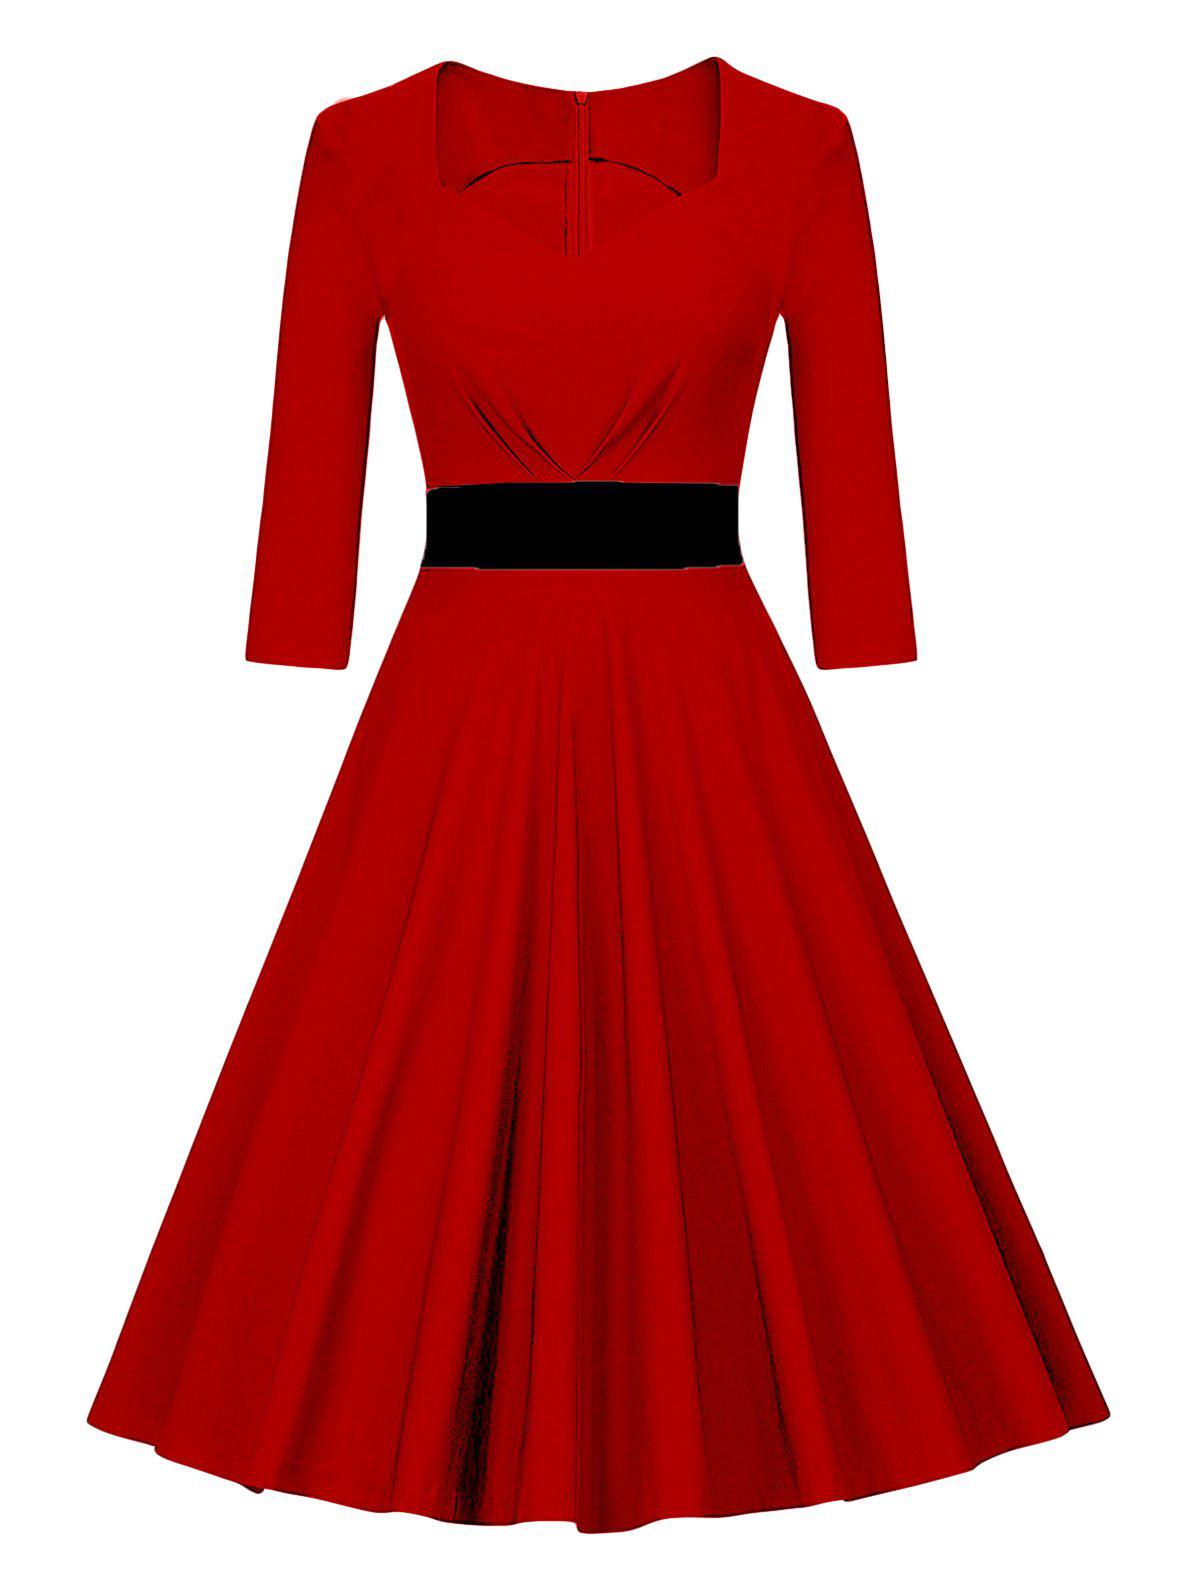 Vintage Color Block Pin Up Swing DressWOMEN<br><br>Size: XL; Color: RED; Style: Vintage; Material: Polyester,Spandex; Silhouette: A-Line; Dresses Length: Knee-Length; Neckline: Sweetheart Neck; Sleeve Length: 3/4 Length Sleeves; Pattern Type: Patchwork; With Belt: No; Season: Fall,Spring; Weight: 0.4000kg; Package Contents: 1 x Dress;